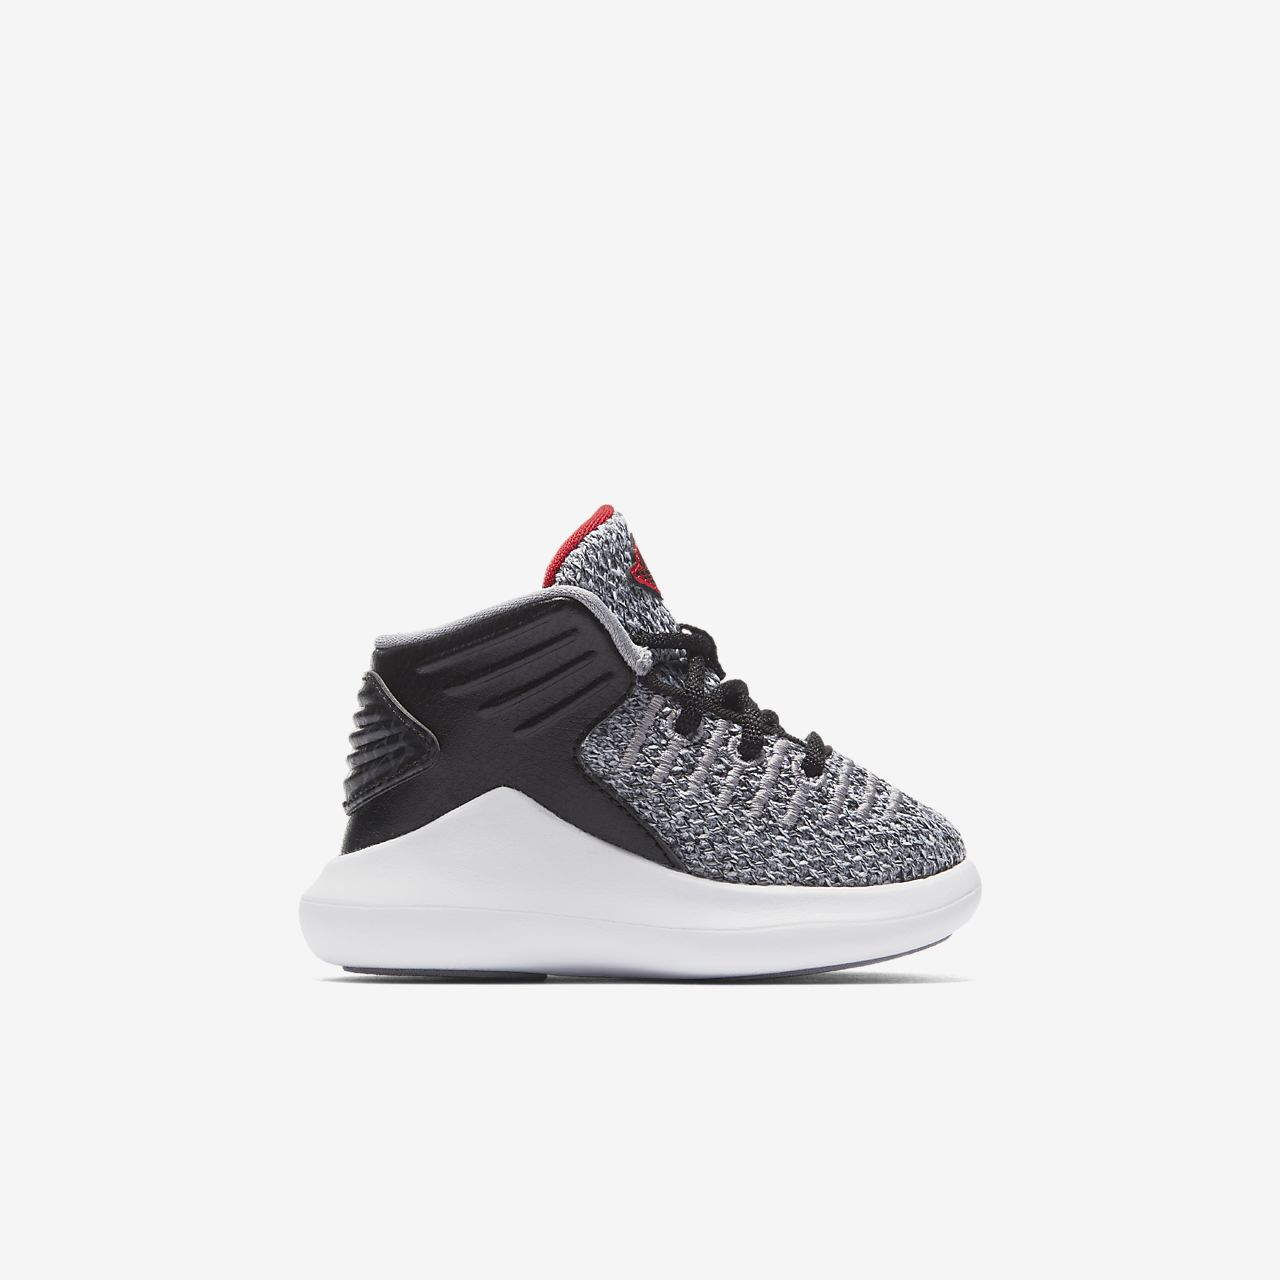 ... Air Jordan XXXII Infant/Toddler Shoe